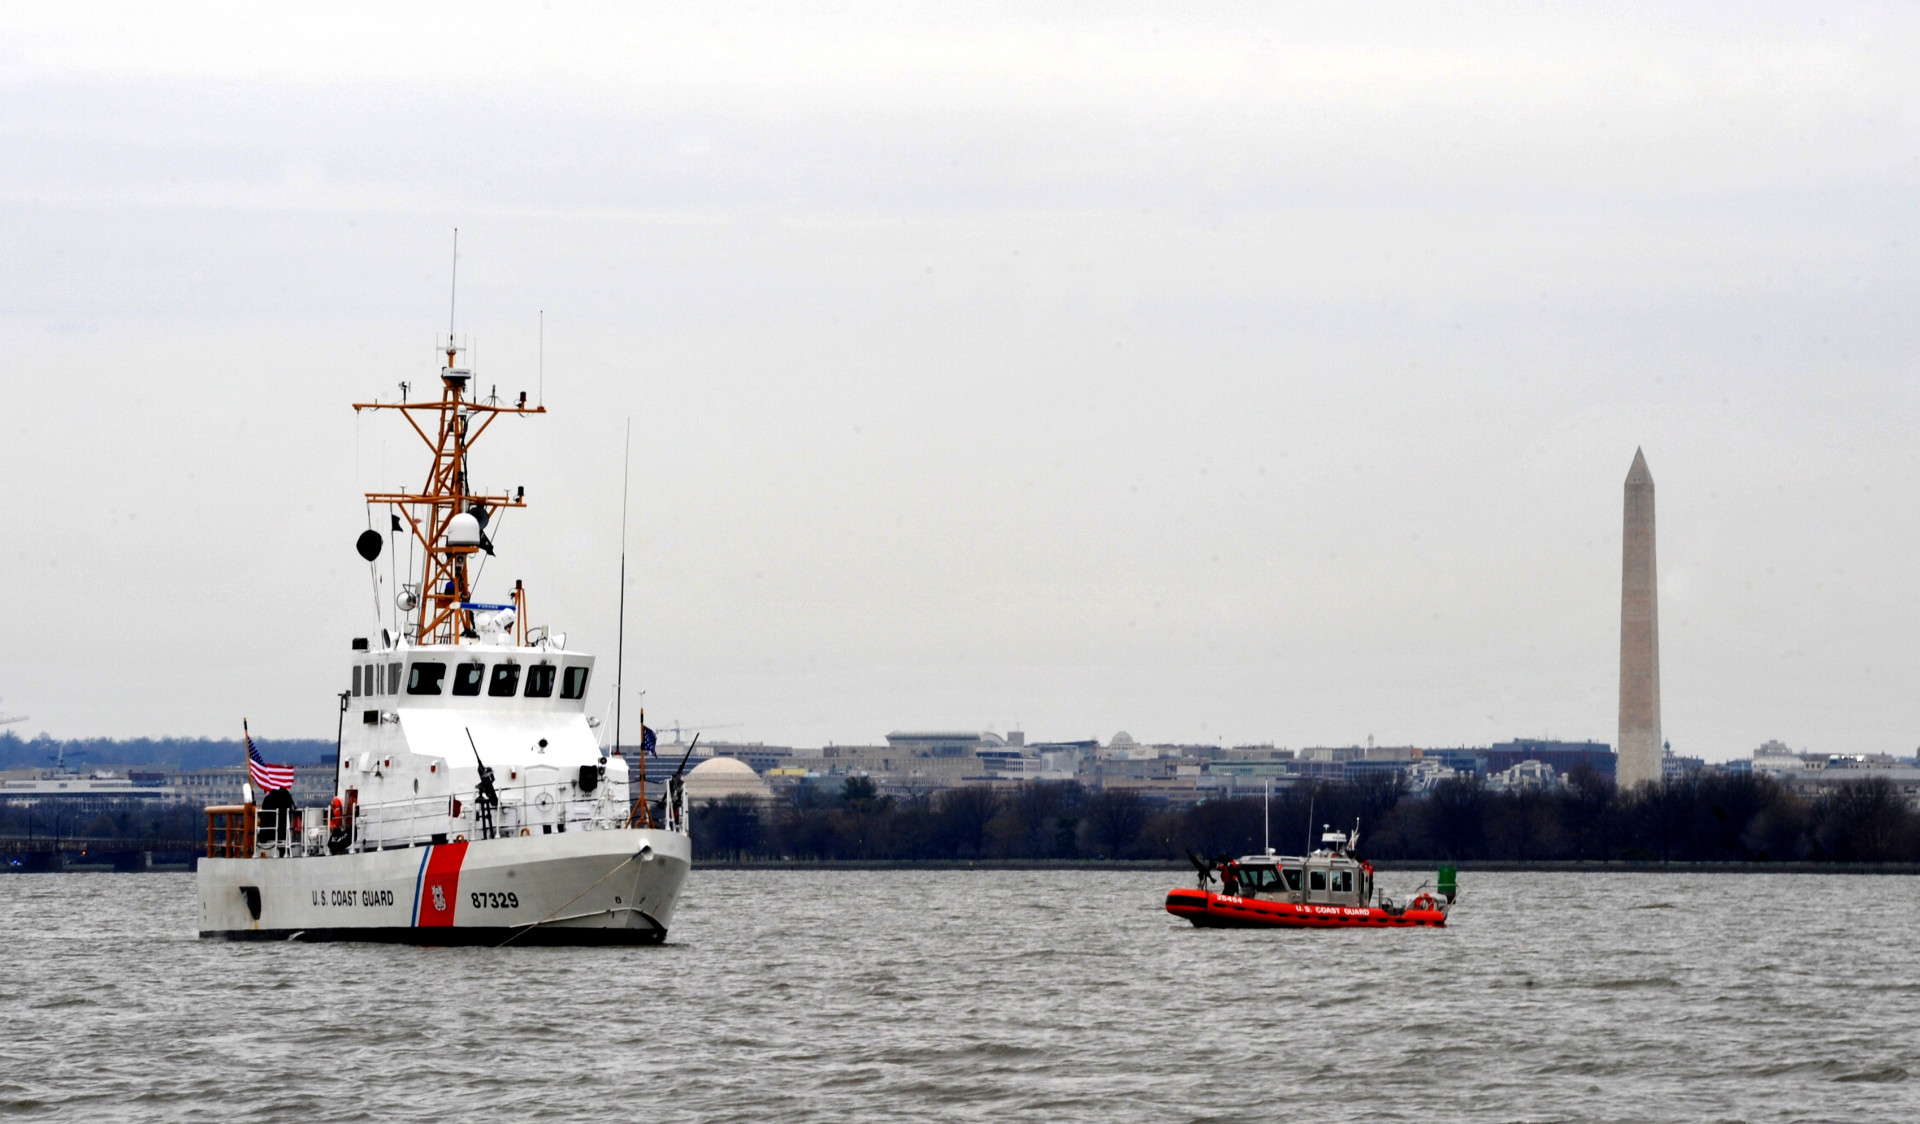 The U.S. Coast Guard patrols the Potomac.